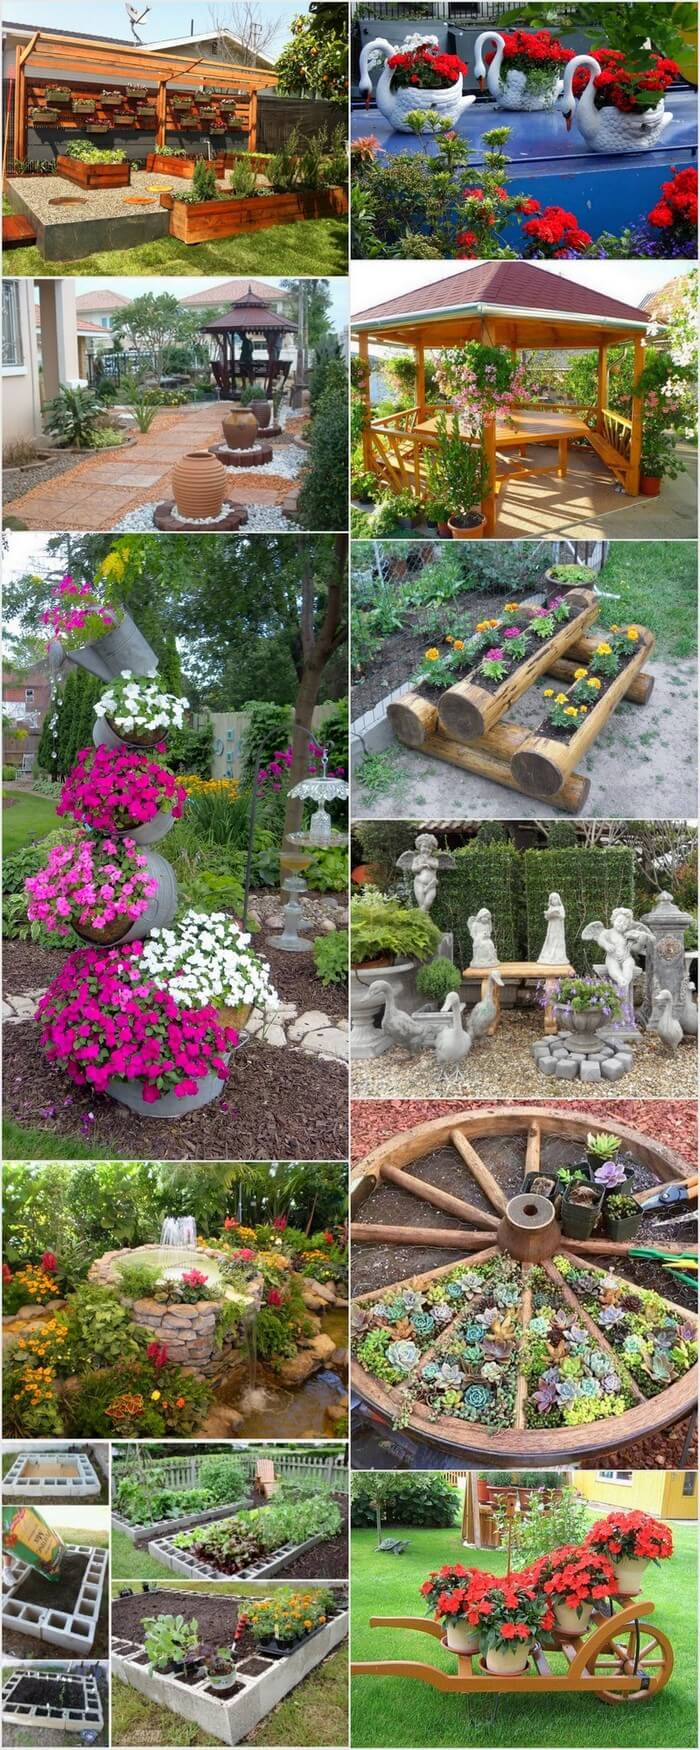 Pretty wonderful diy garden decor ideas recycled things for Diy home design ideas landscape backyard